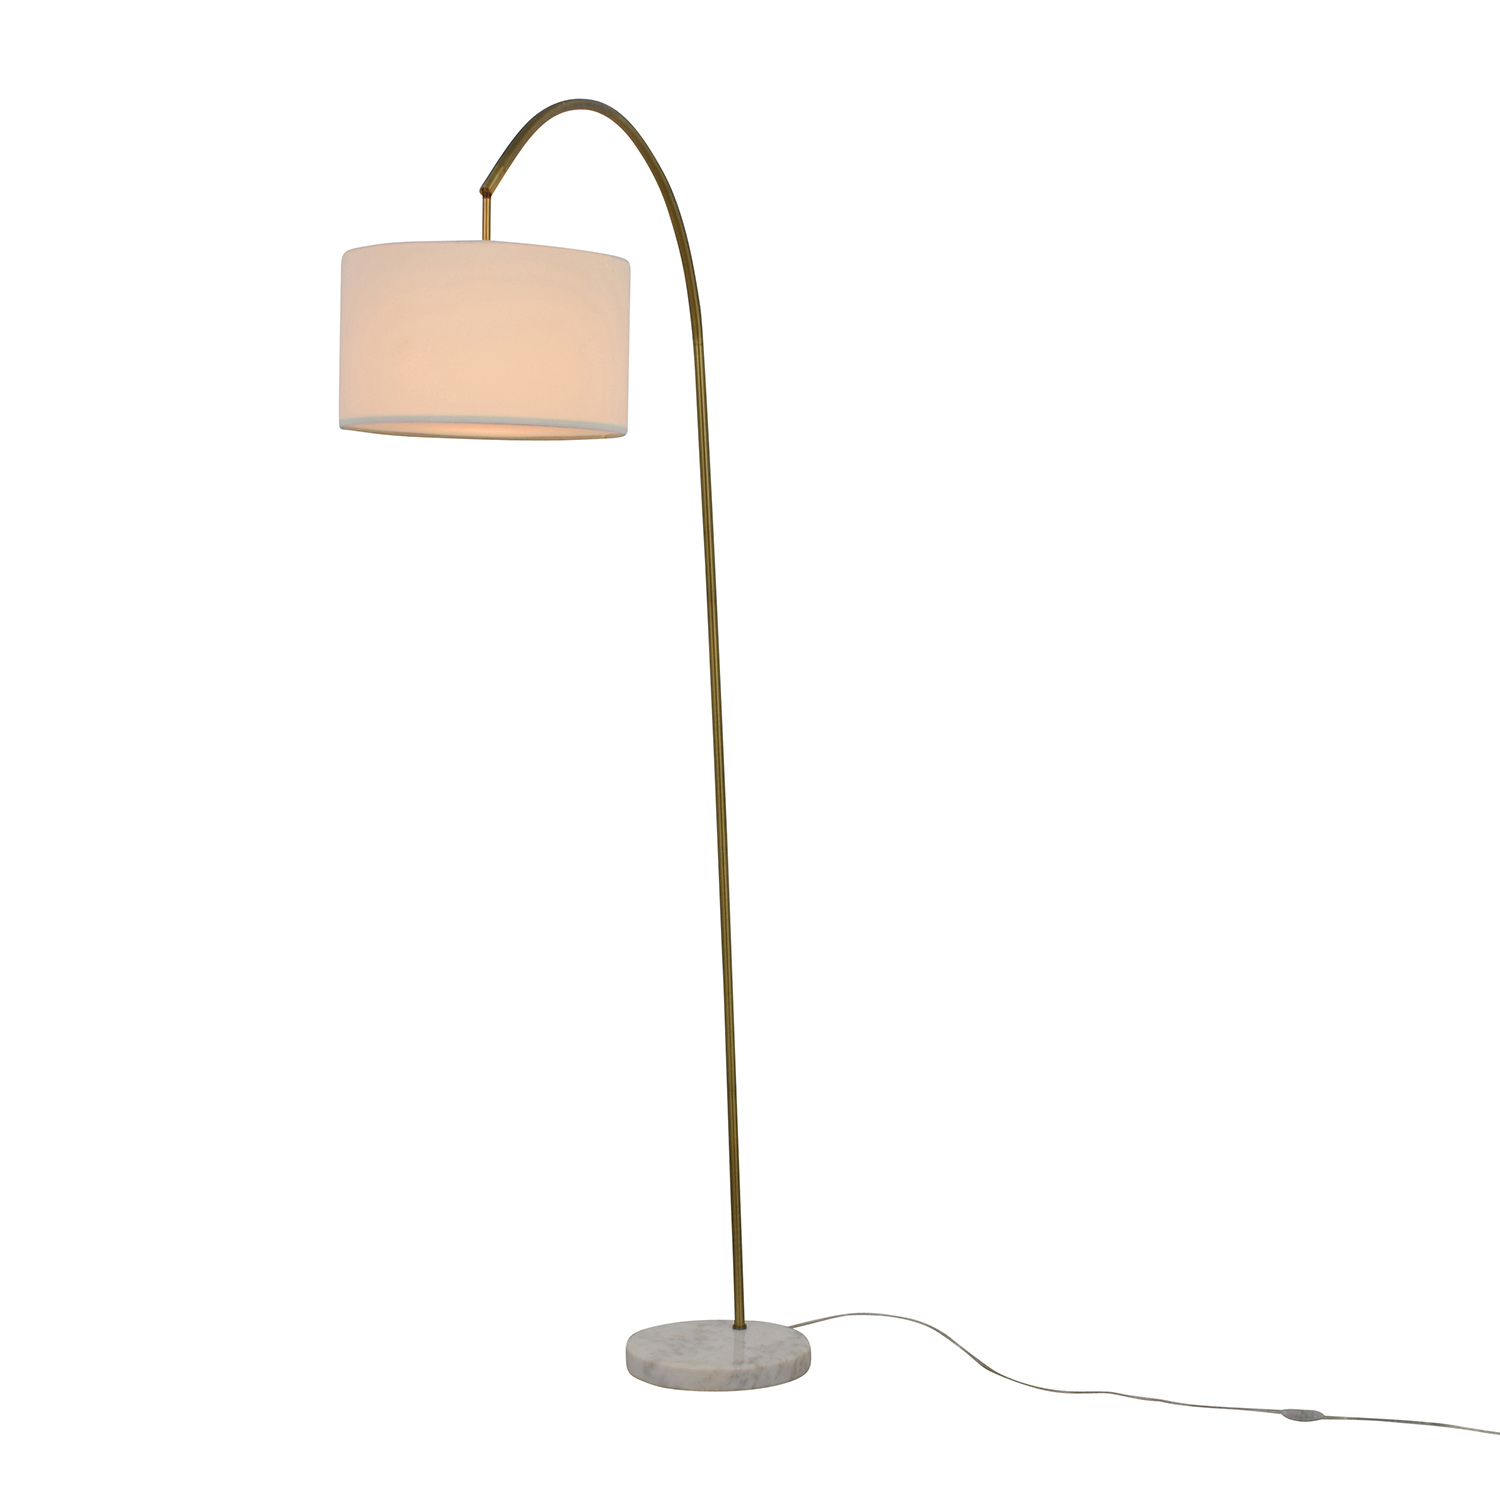 48% OFF - IKEA IKEA Arc Floor Lamp / Decor